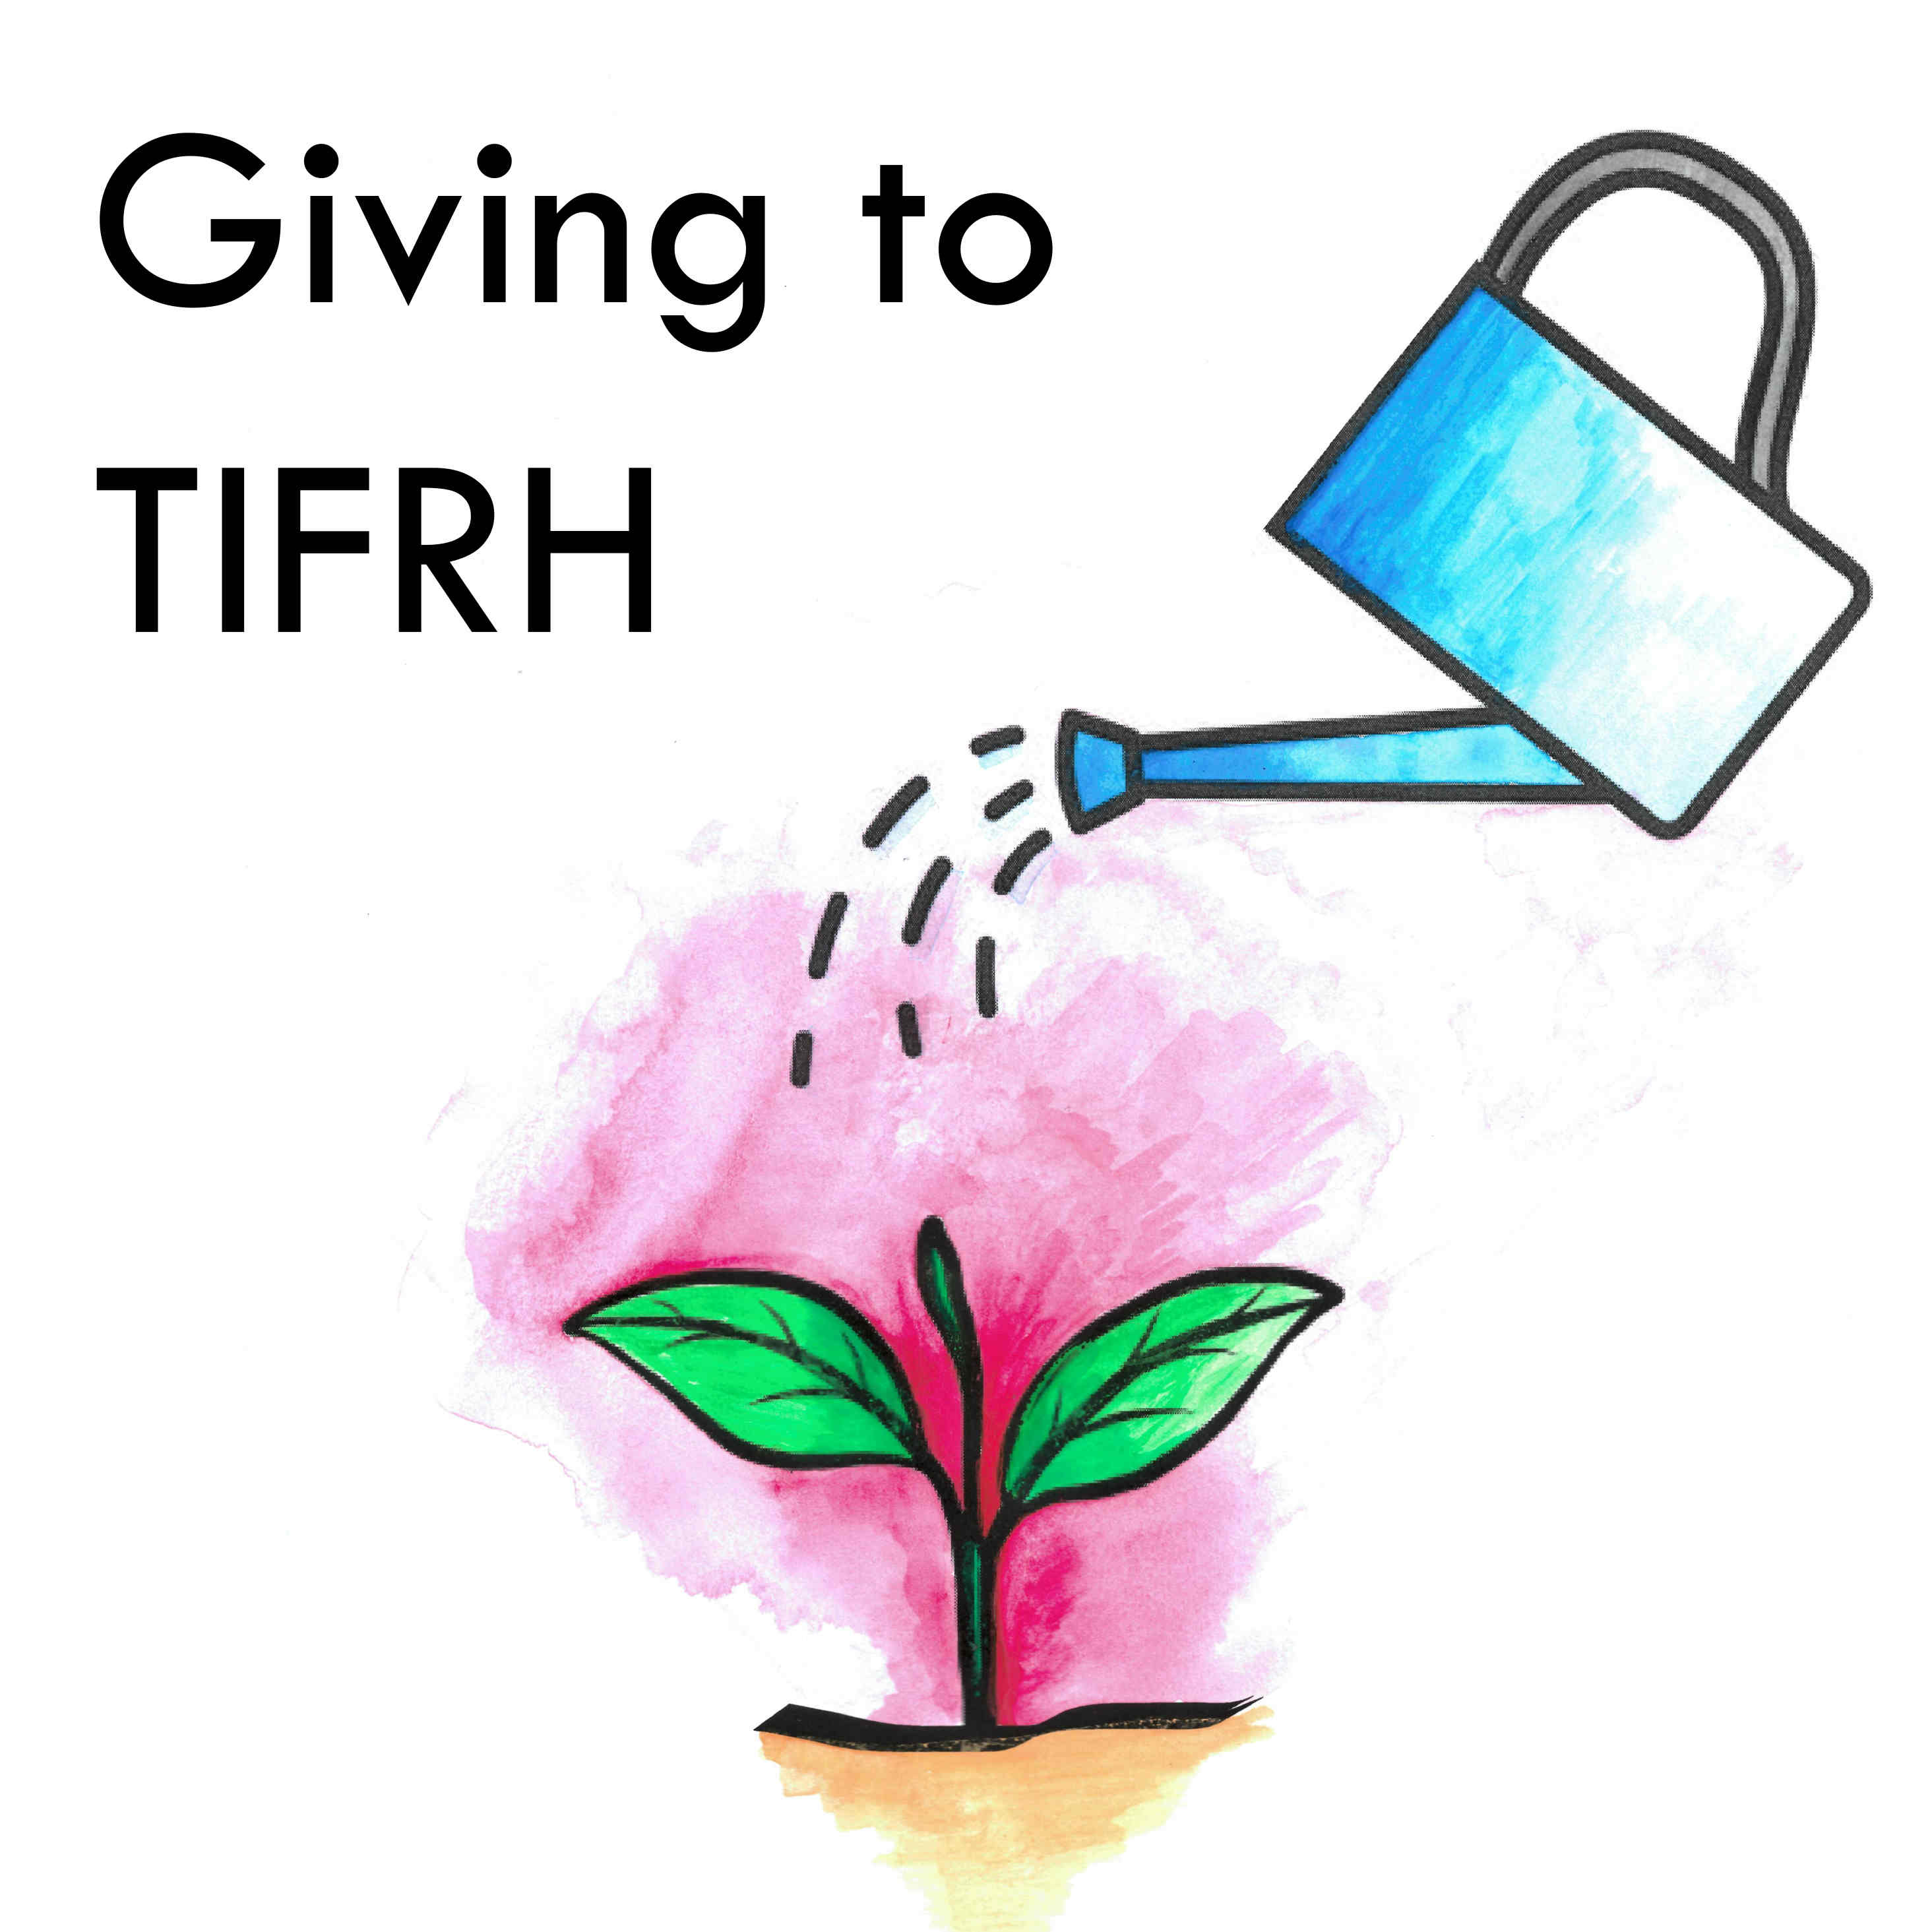 Giving to TIFRH